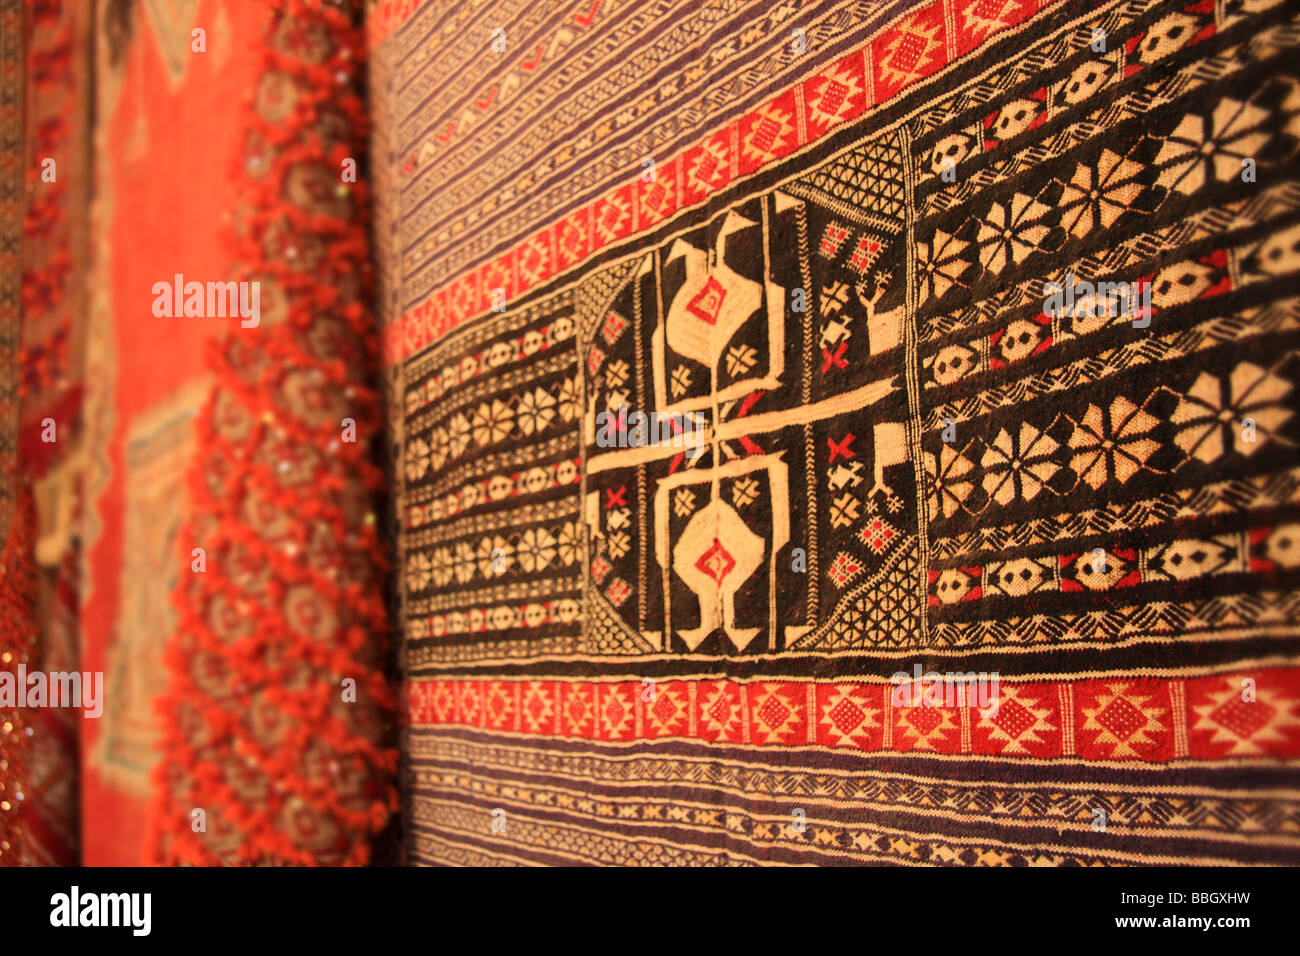 traditional berber carpet morocco stockfotos traditional berber carpet morocco bilder alamy. Black Bedroom Furniture Sets. Home Design Ideas